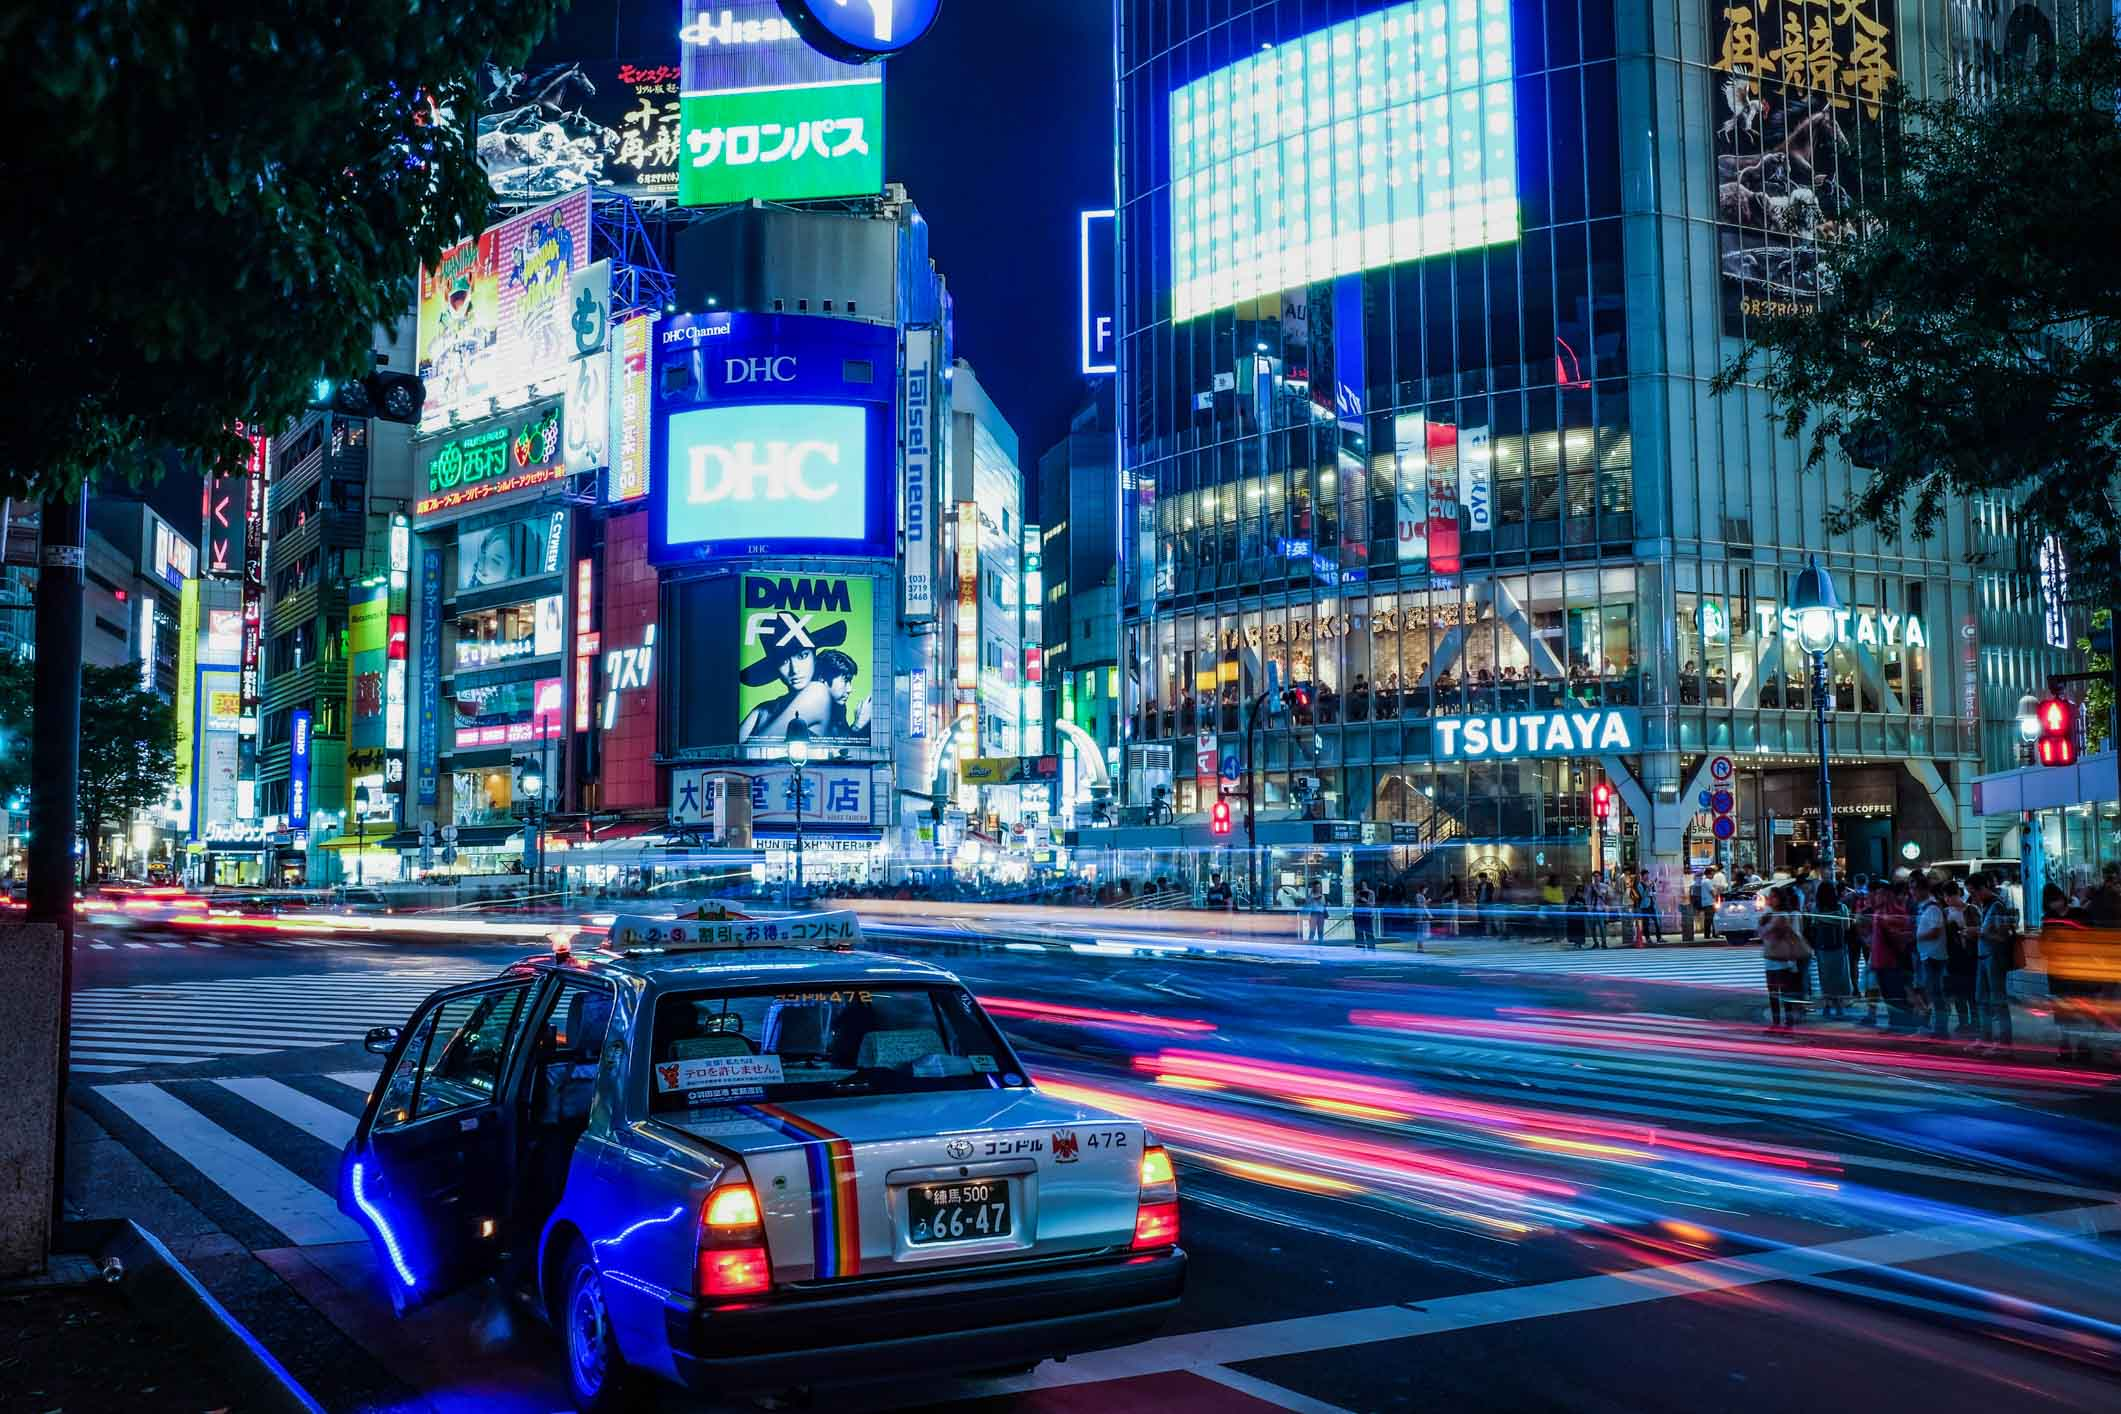 Where to stay in Tokyo First Time